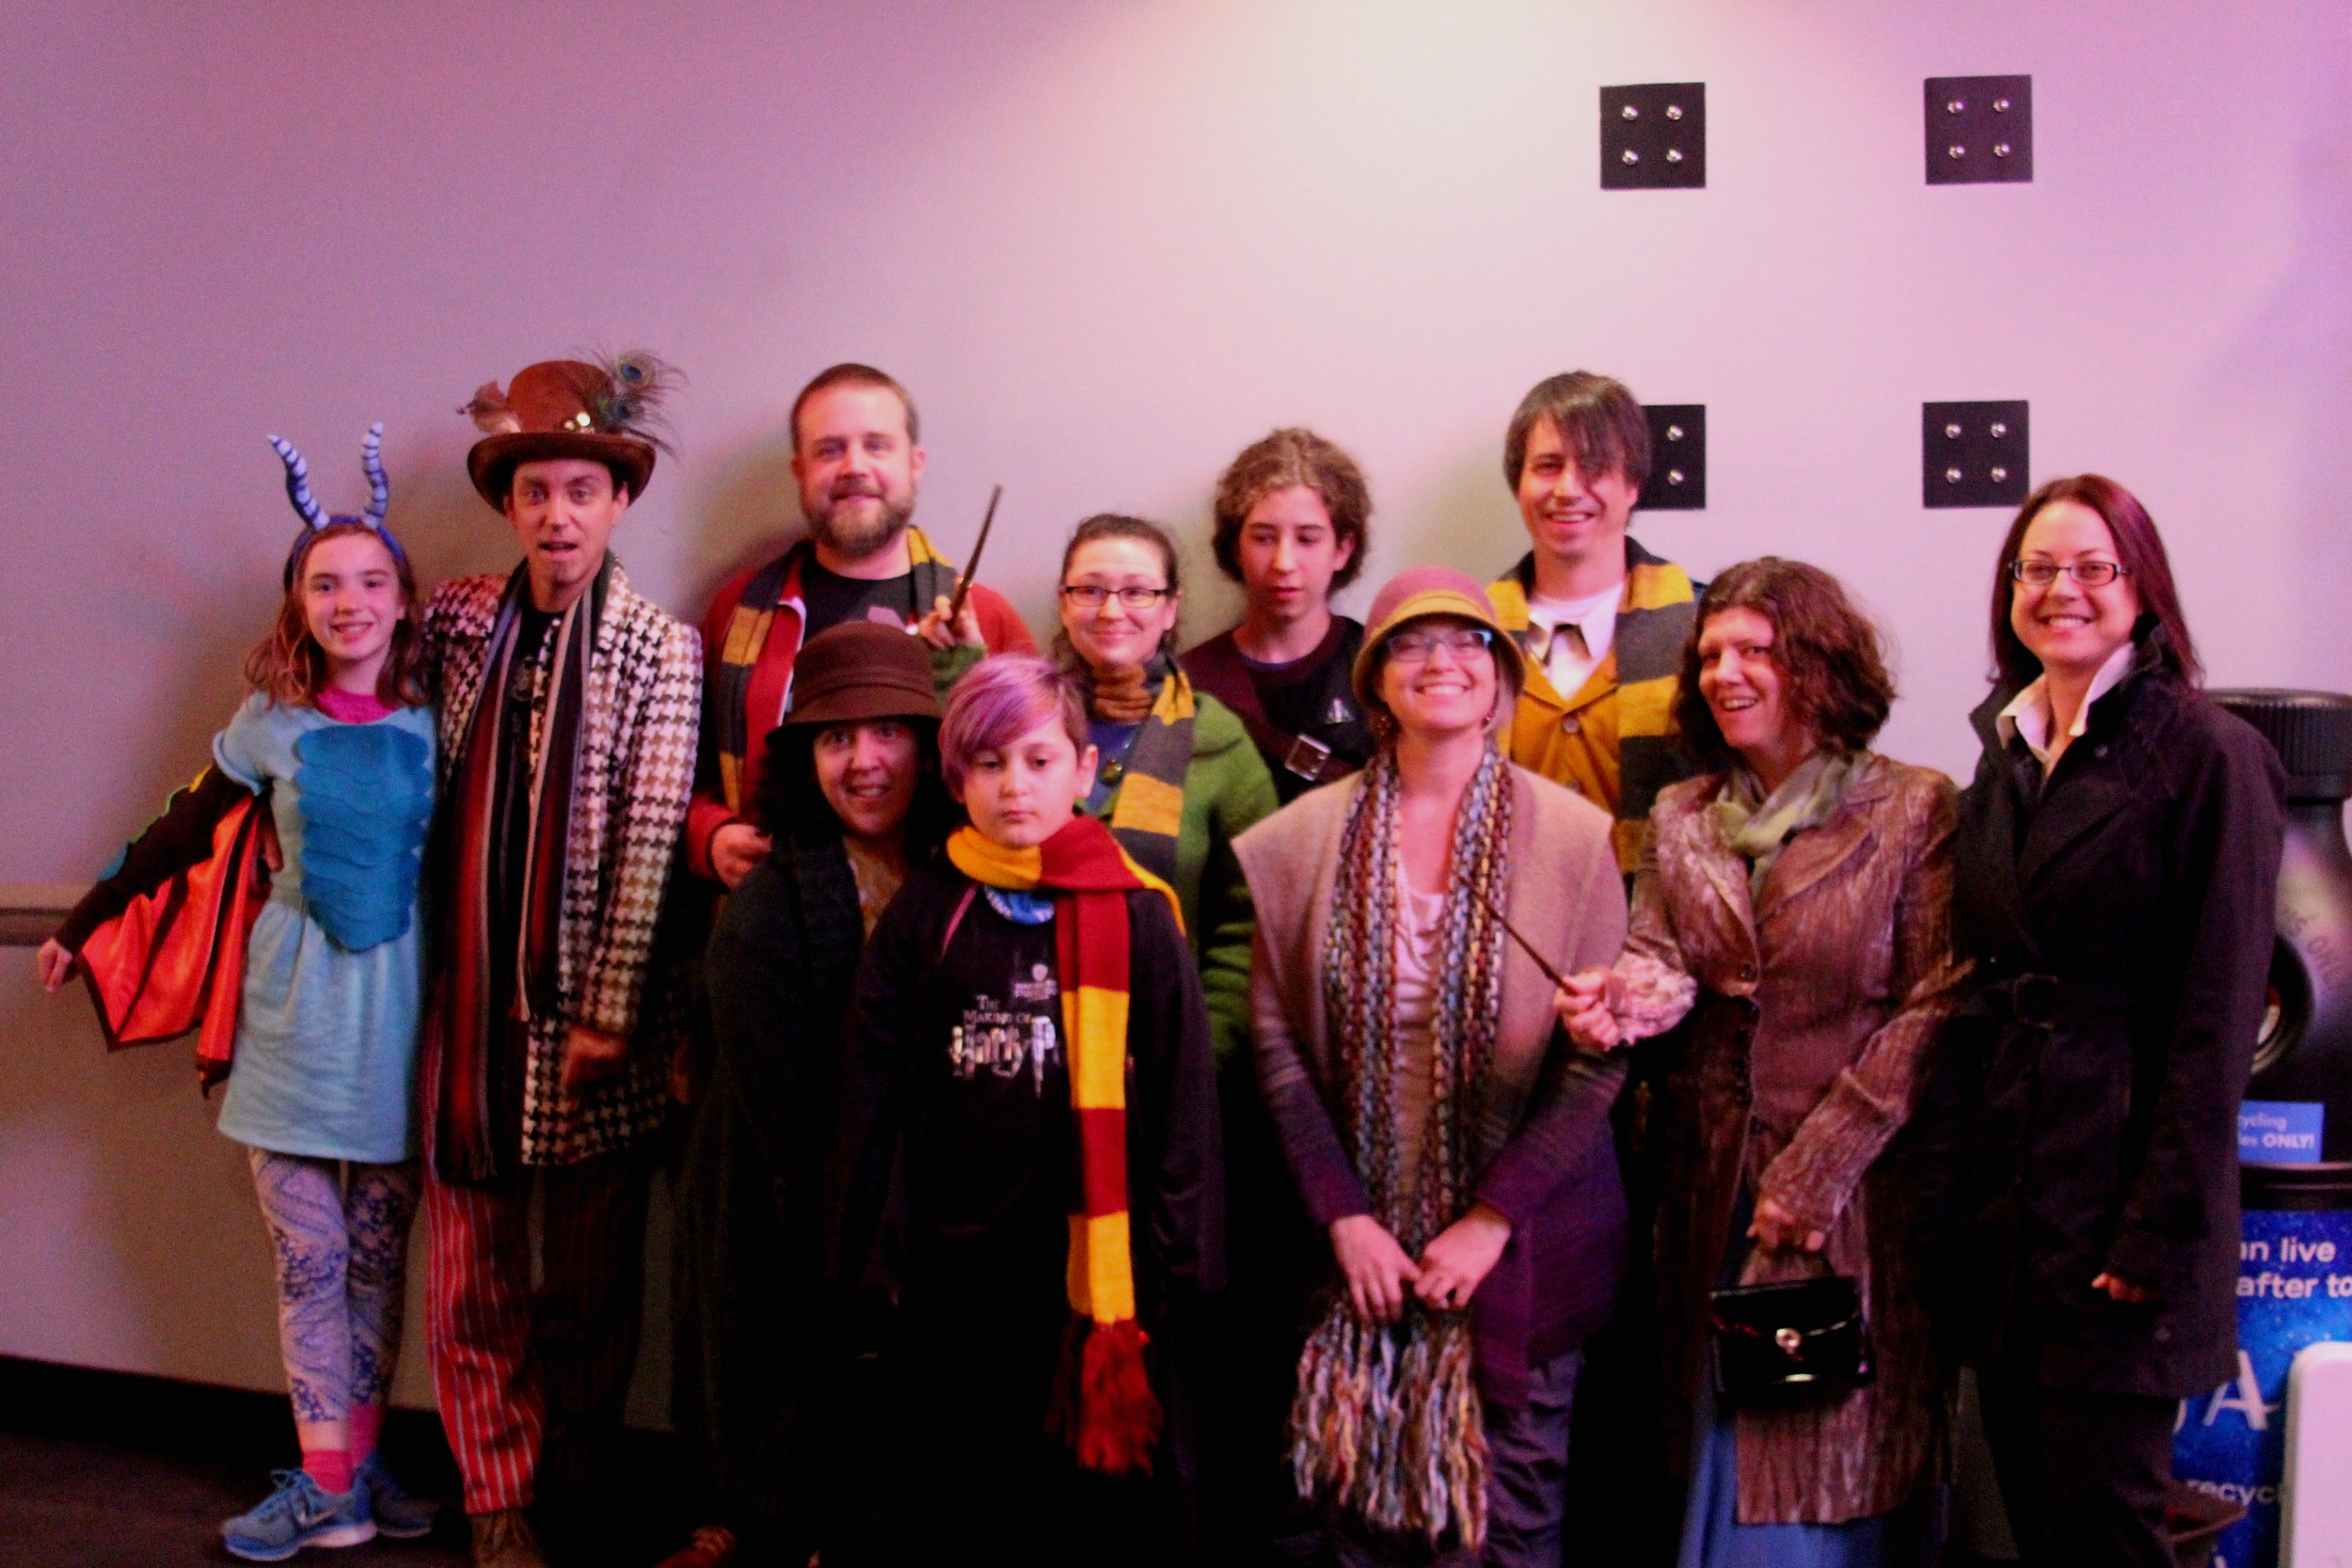 """Movies - Client Appreciation Party - 2018 Private Screening of Fantastic Beasts: The Crimes of Grindelwald. Costume Contest Participants!""""Everything I learned I learned from themovies."""" - Audrey Hepburn"""